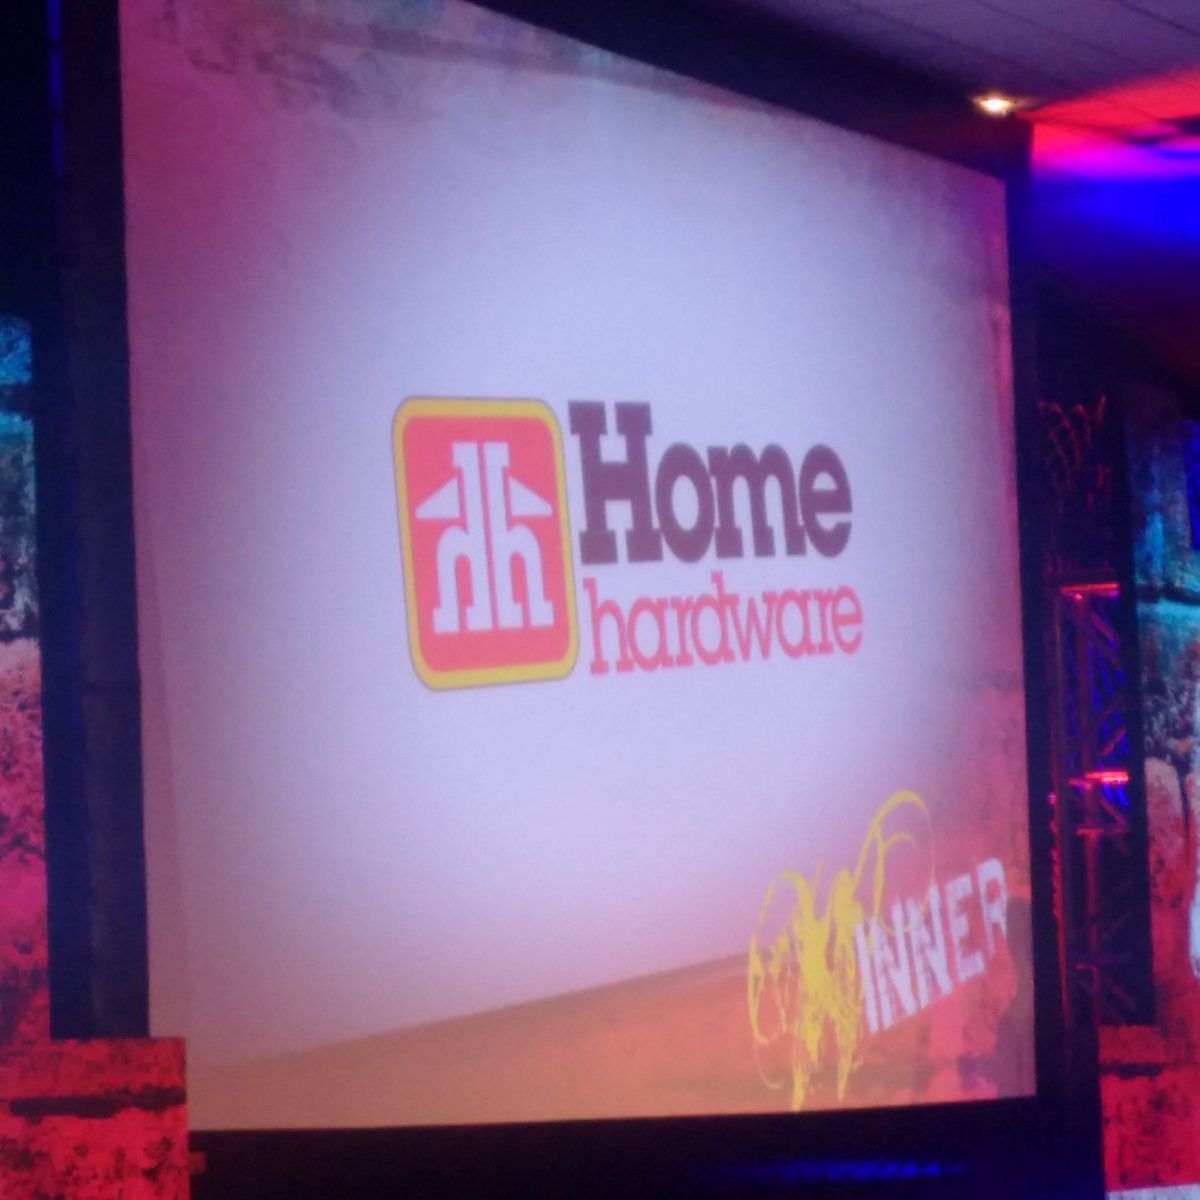 Our Business of the Year (over 50 employees) Award winner is...@home_hardware! Well deserved! #BEAgala https://t.co/6EZas3o5vY